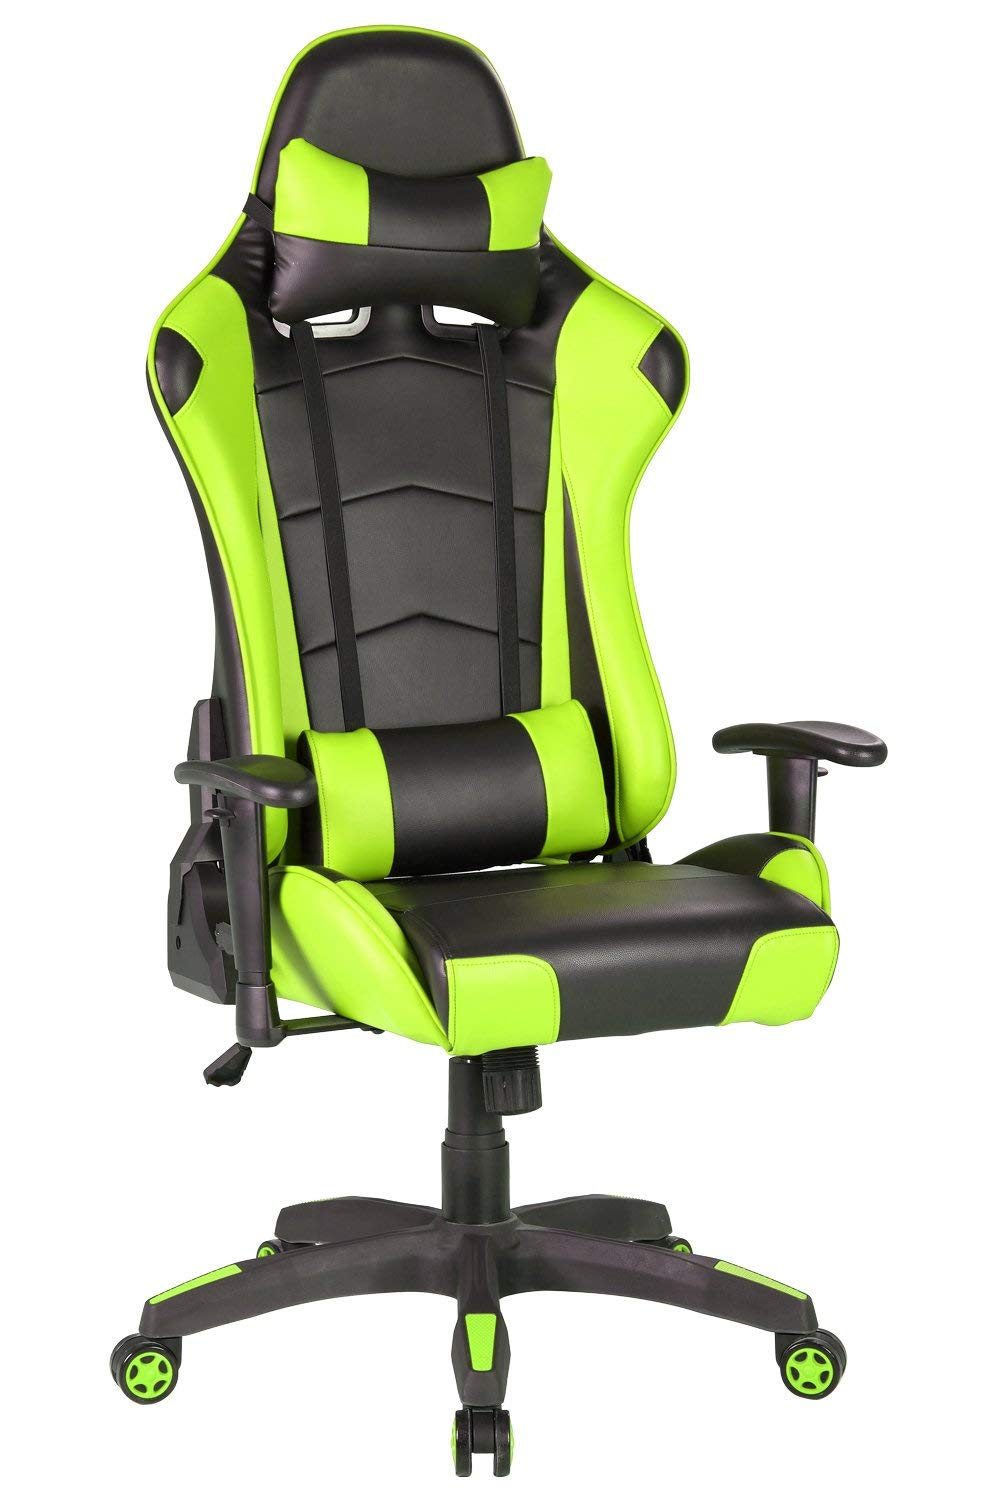 Racing Gaming Chair with High Back Reclining Tilt Luxury Bucket Seat Office Lock